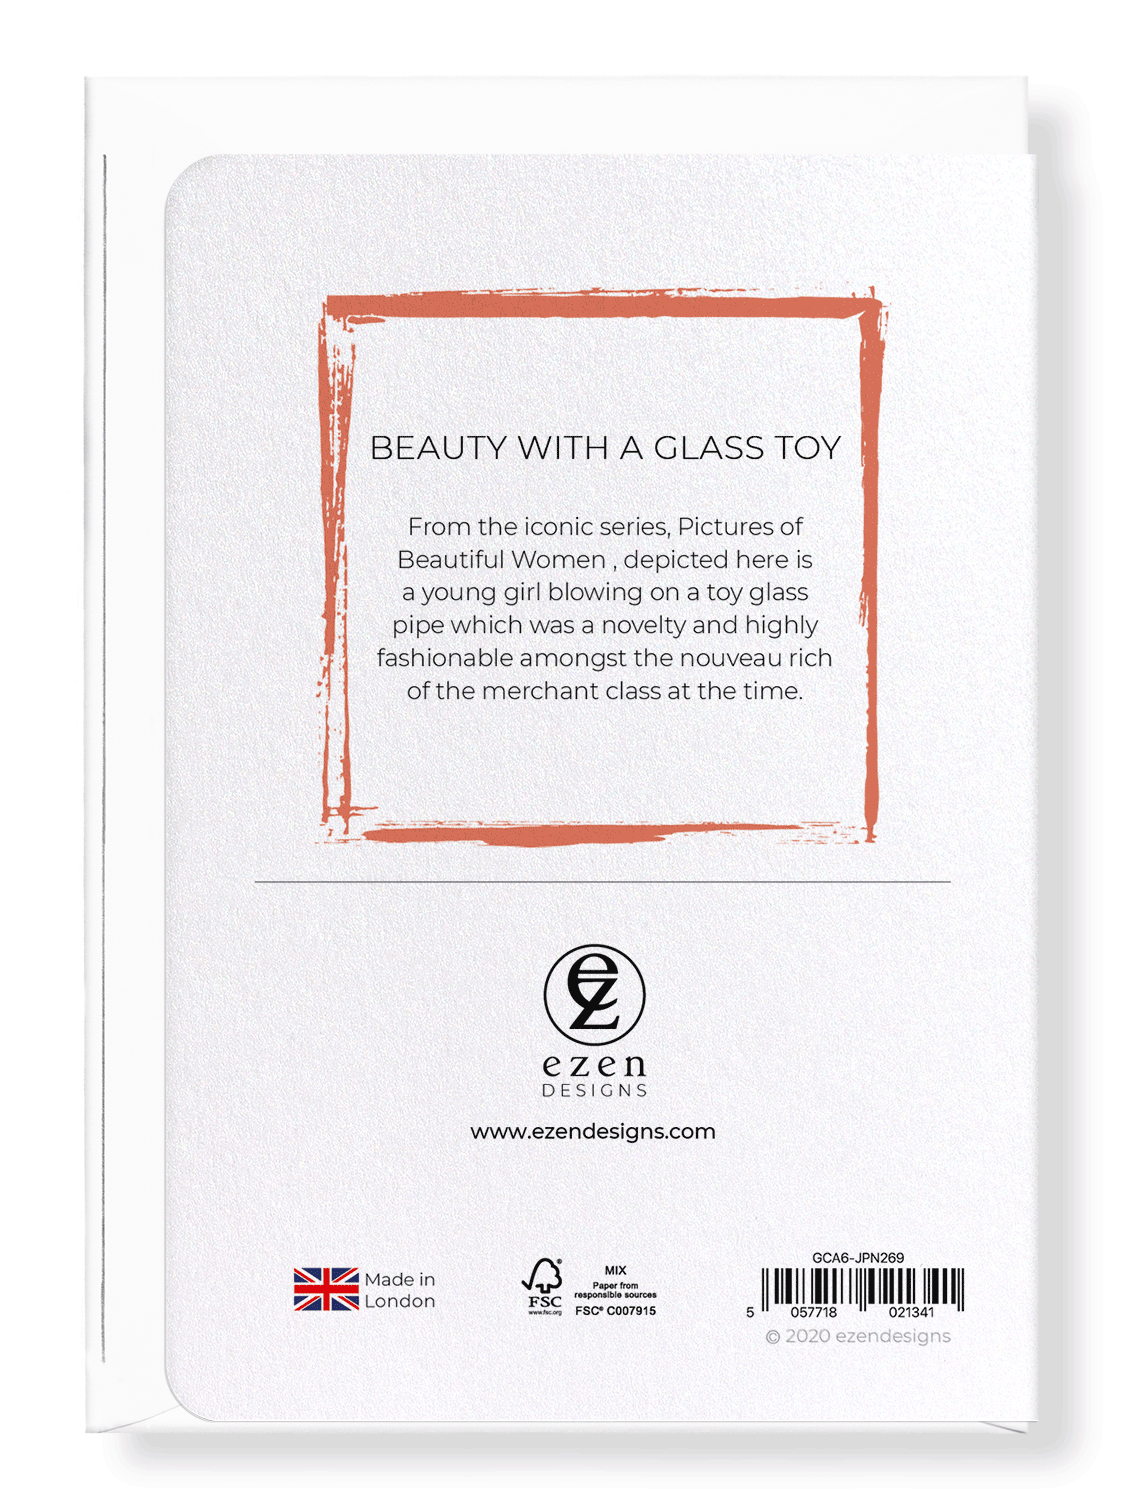 Ezen Designs - Beauty with a glass toy - Greeting Card - Back